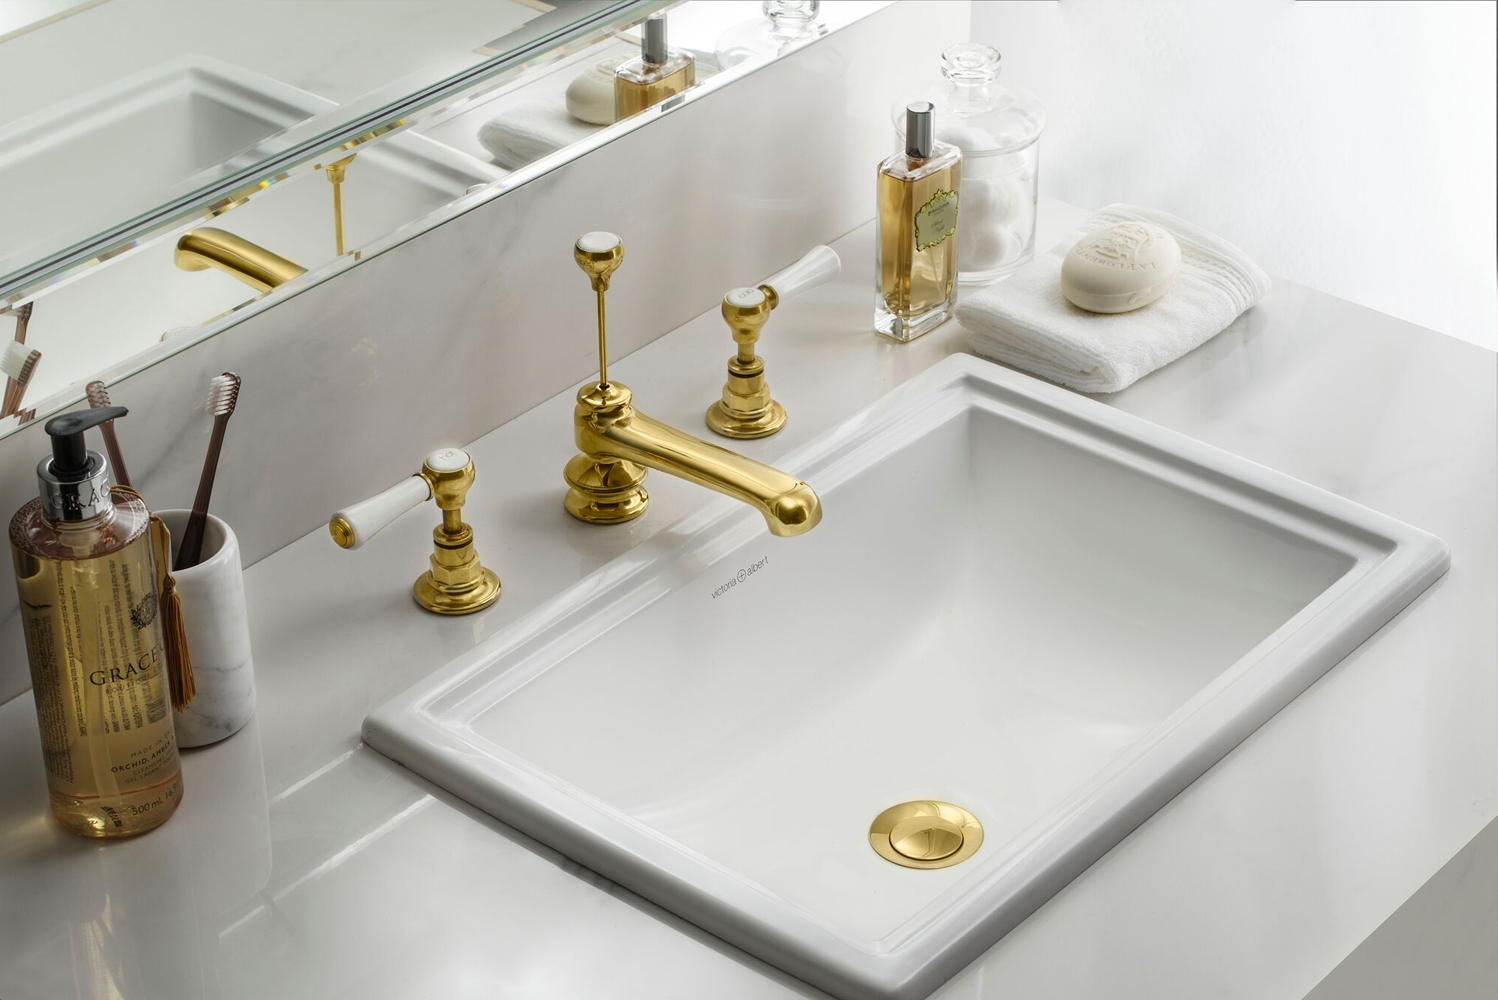 Victoria + Albert introduced a new bathtub-and-basin duo known as the Pembroke collection.